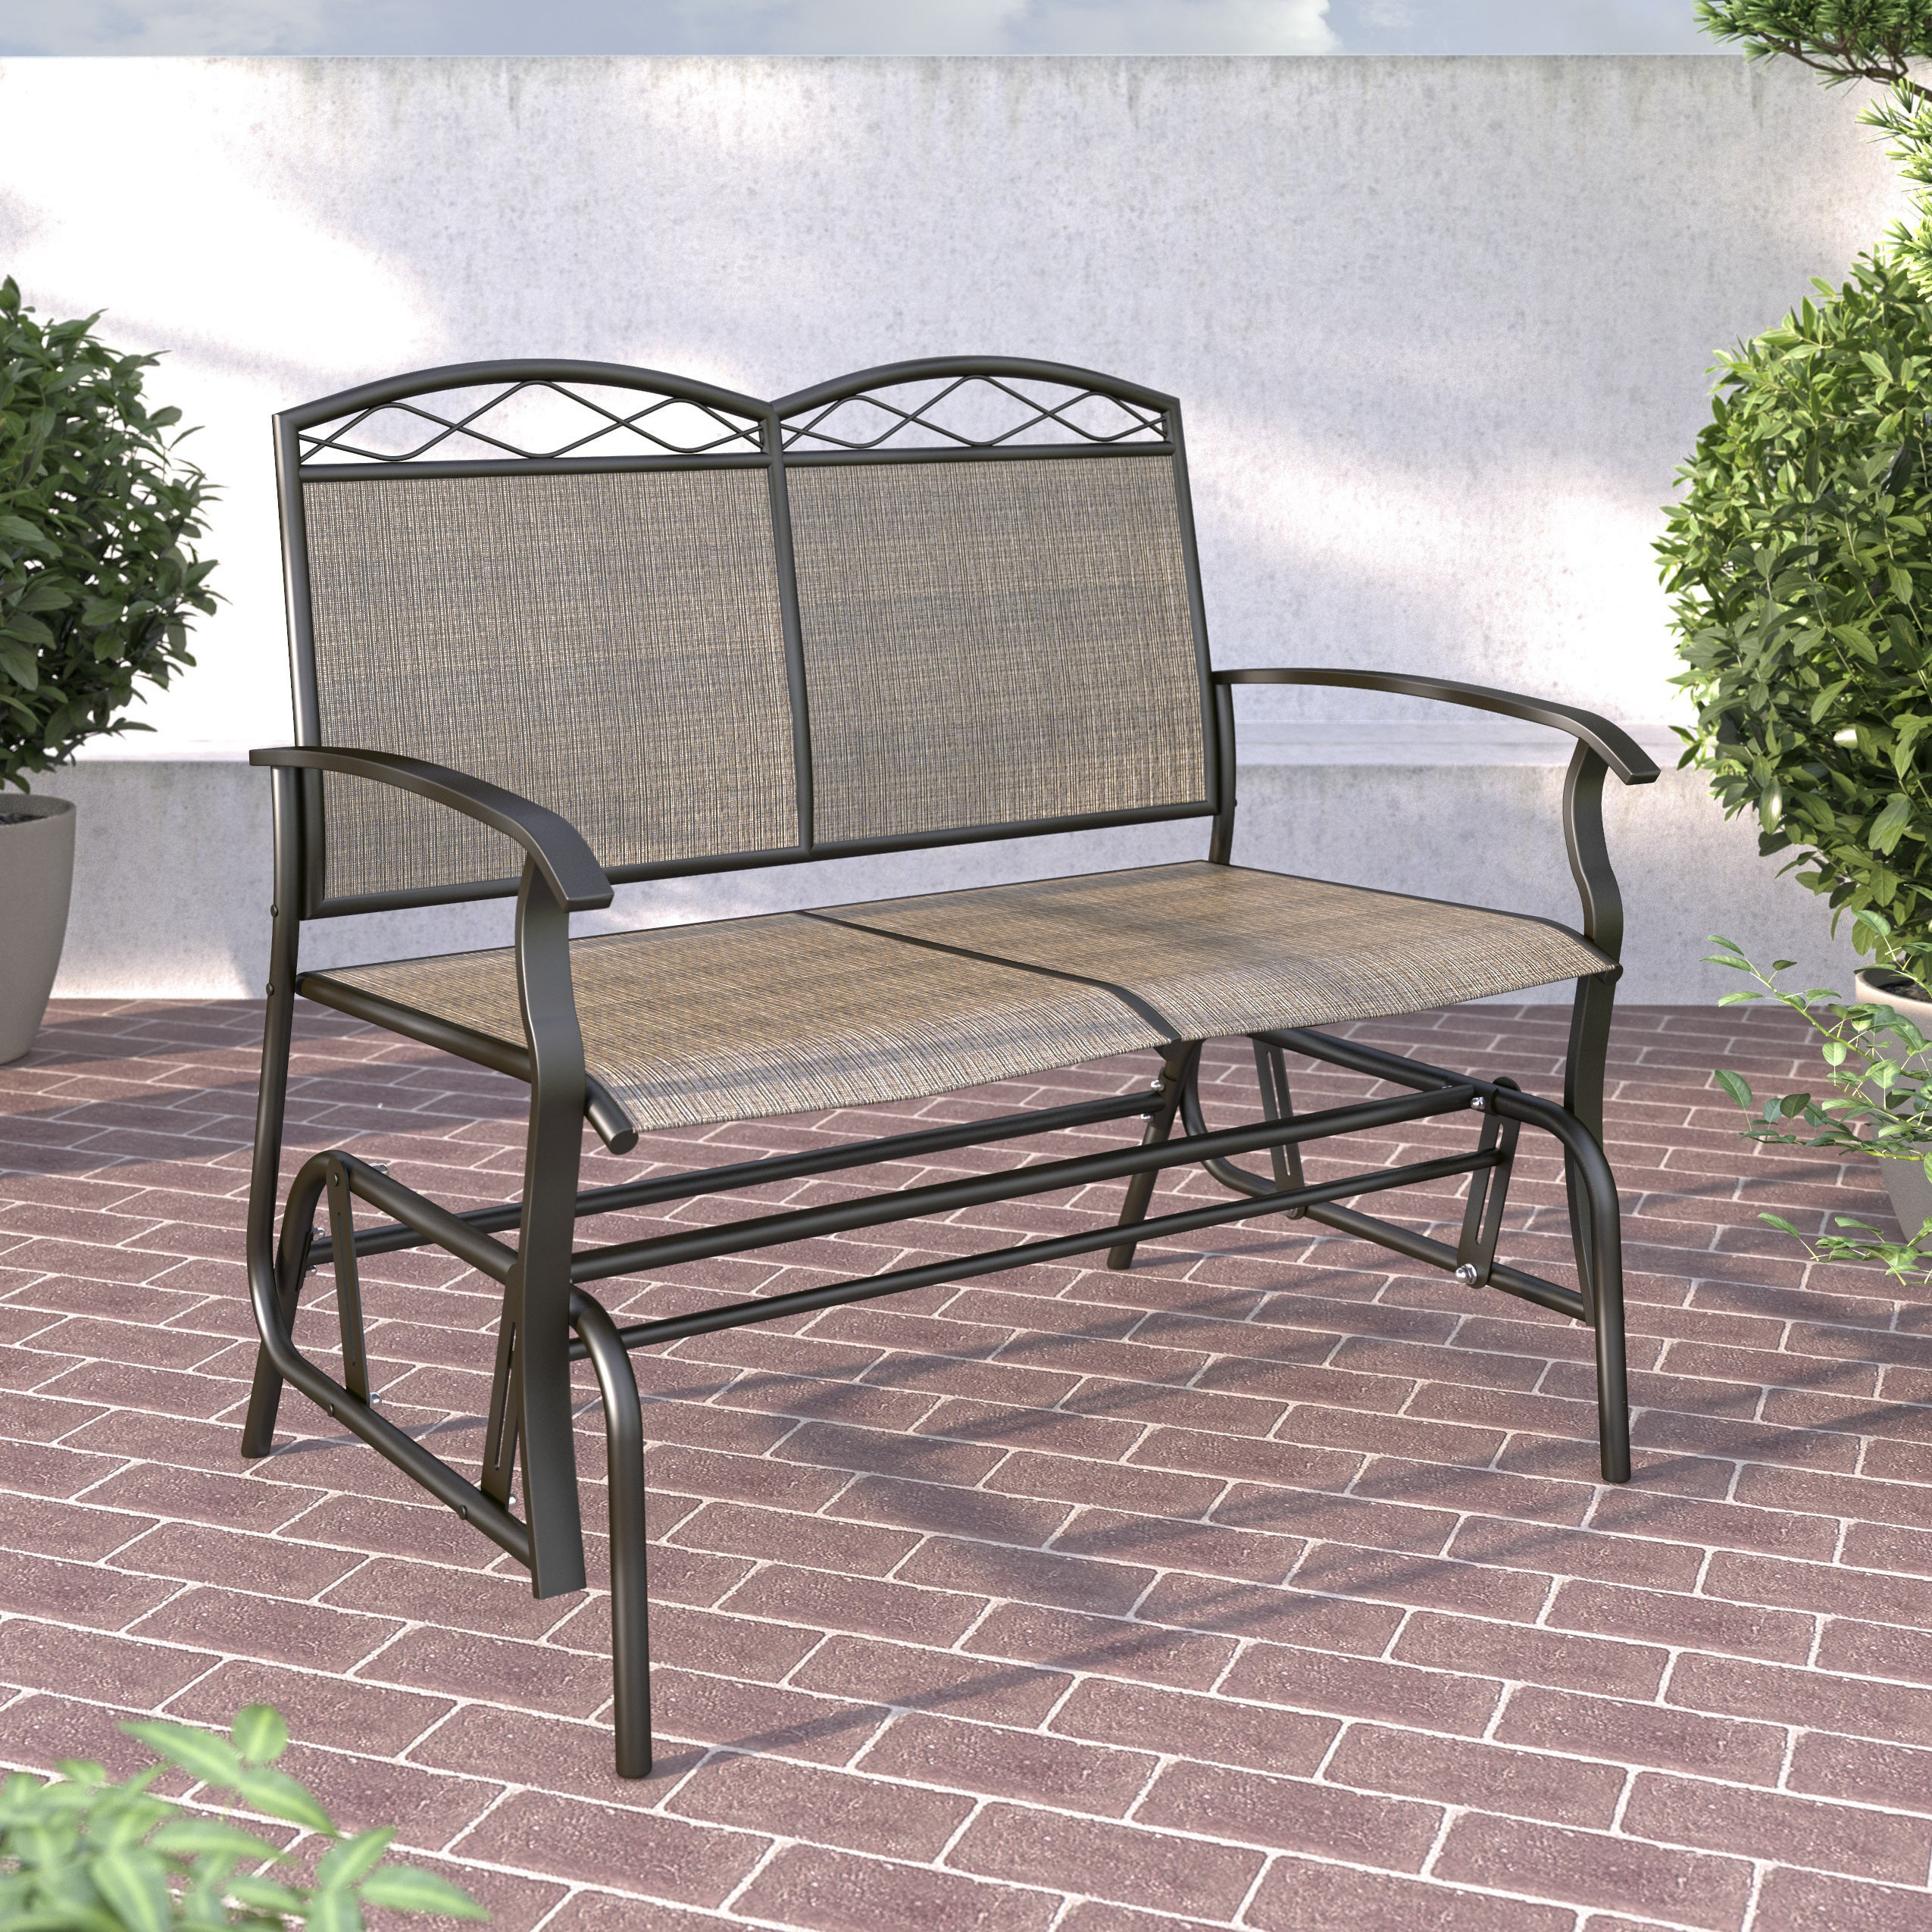 Featured Image of Speckled Glider Benches